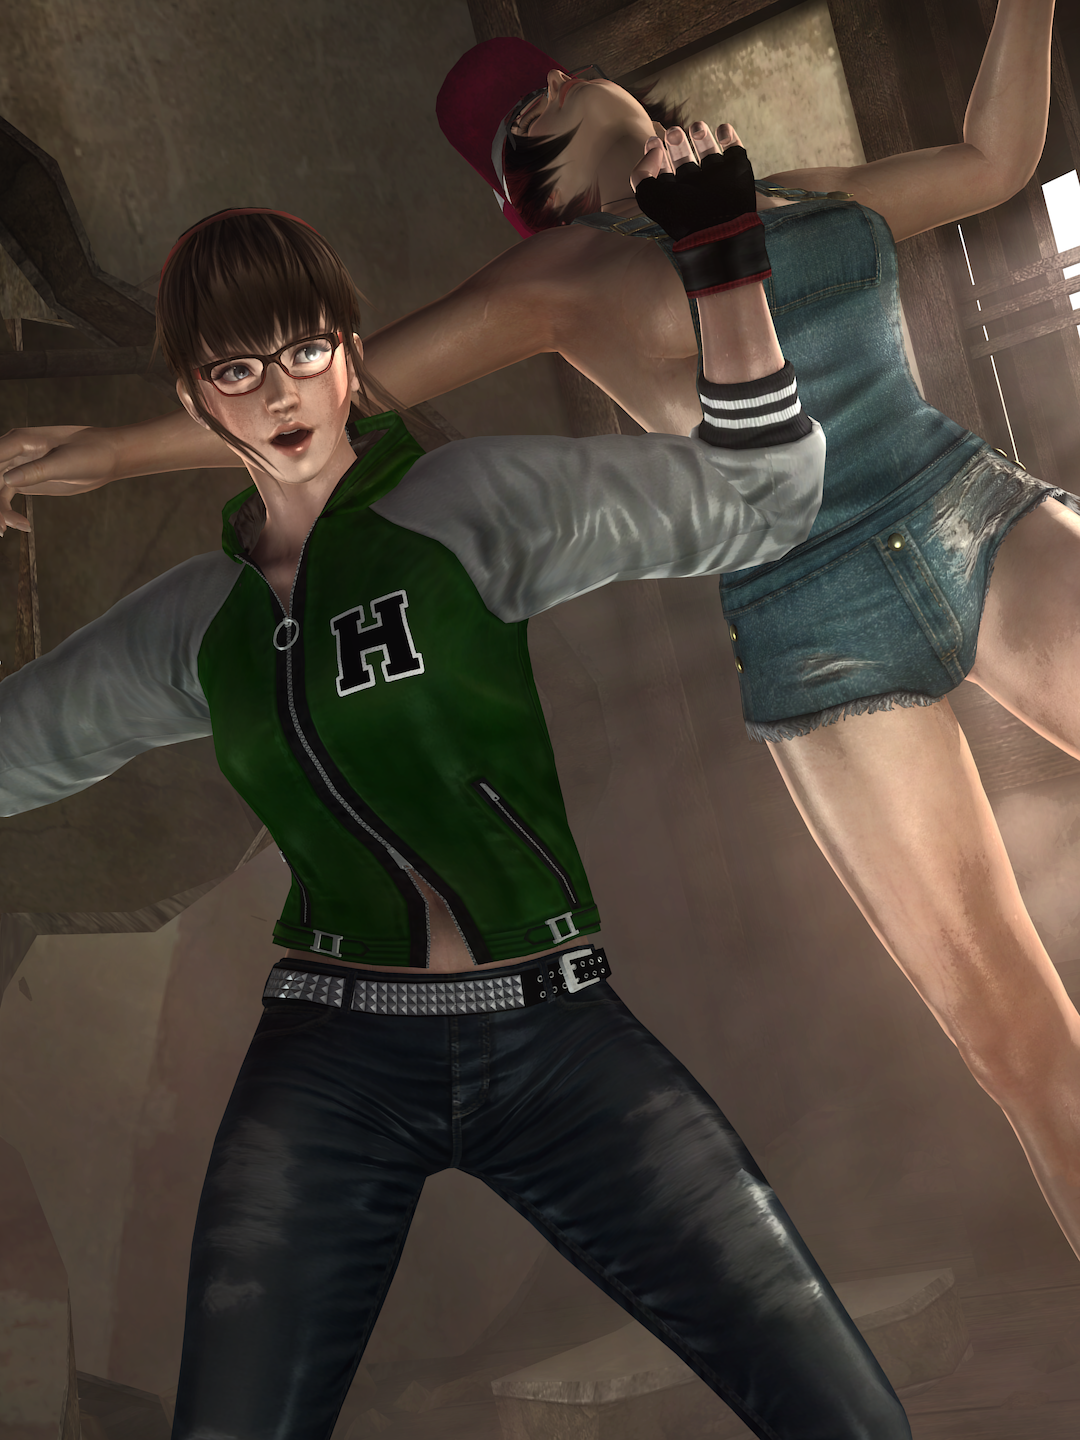 sneakattack.png - Dead or Alive 5: Last Round